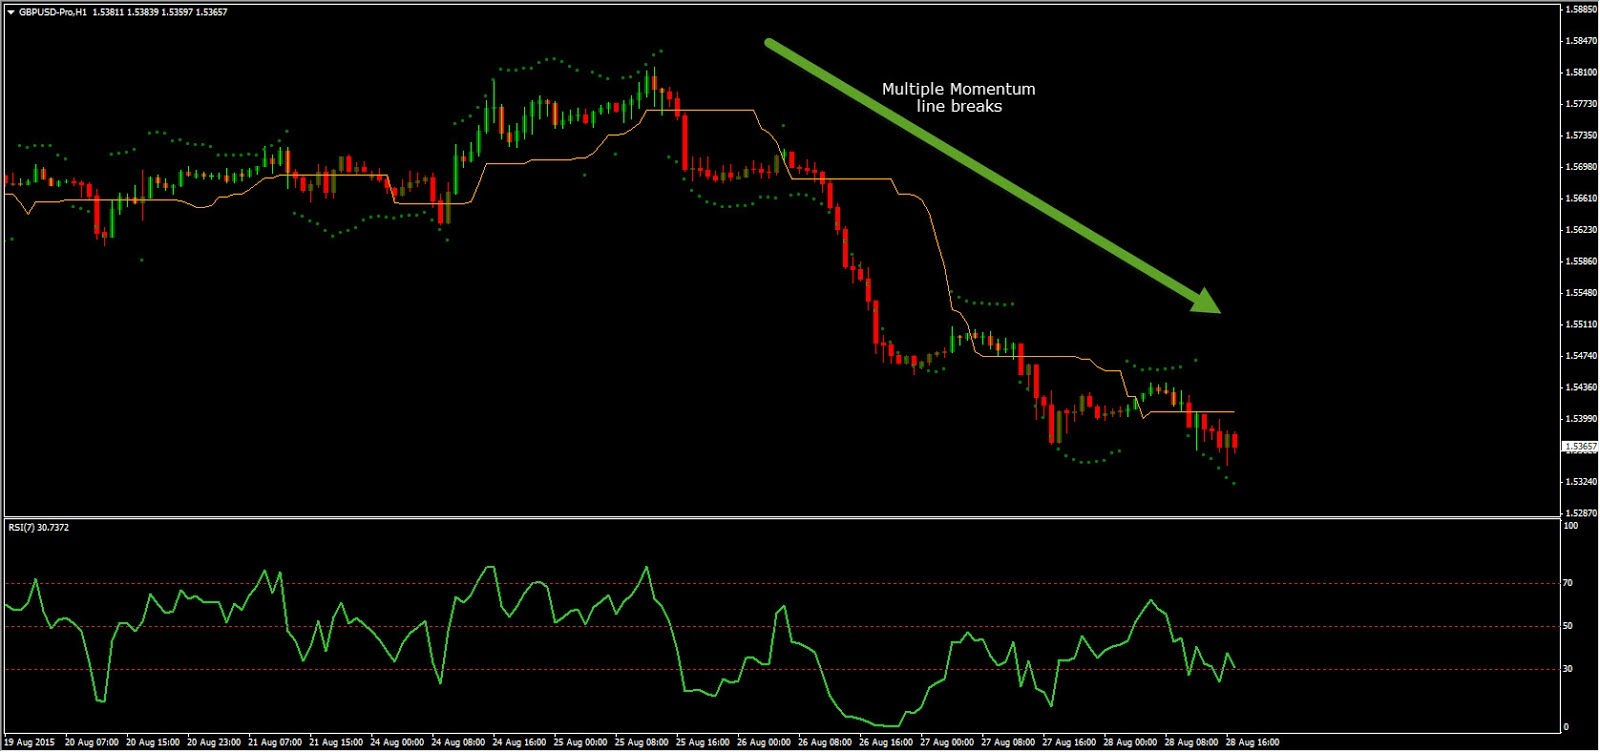 Trading intraday online